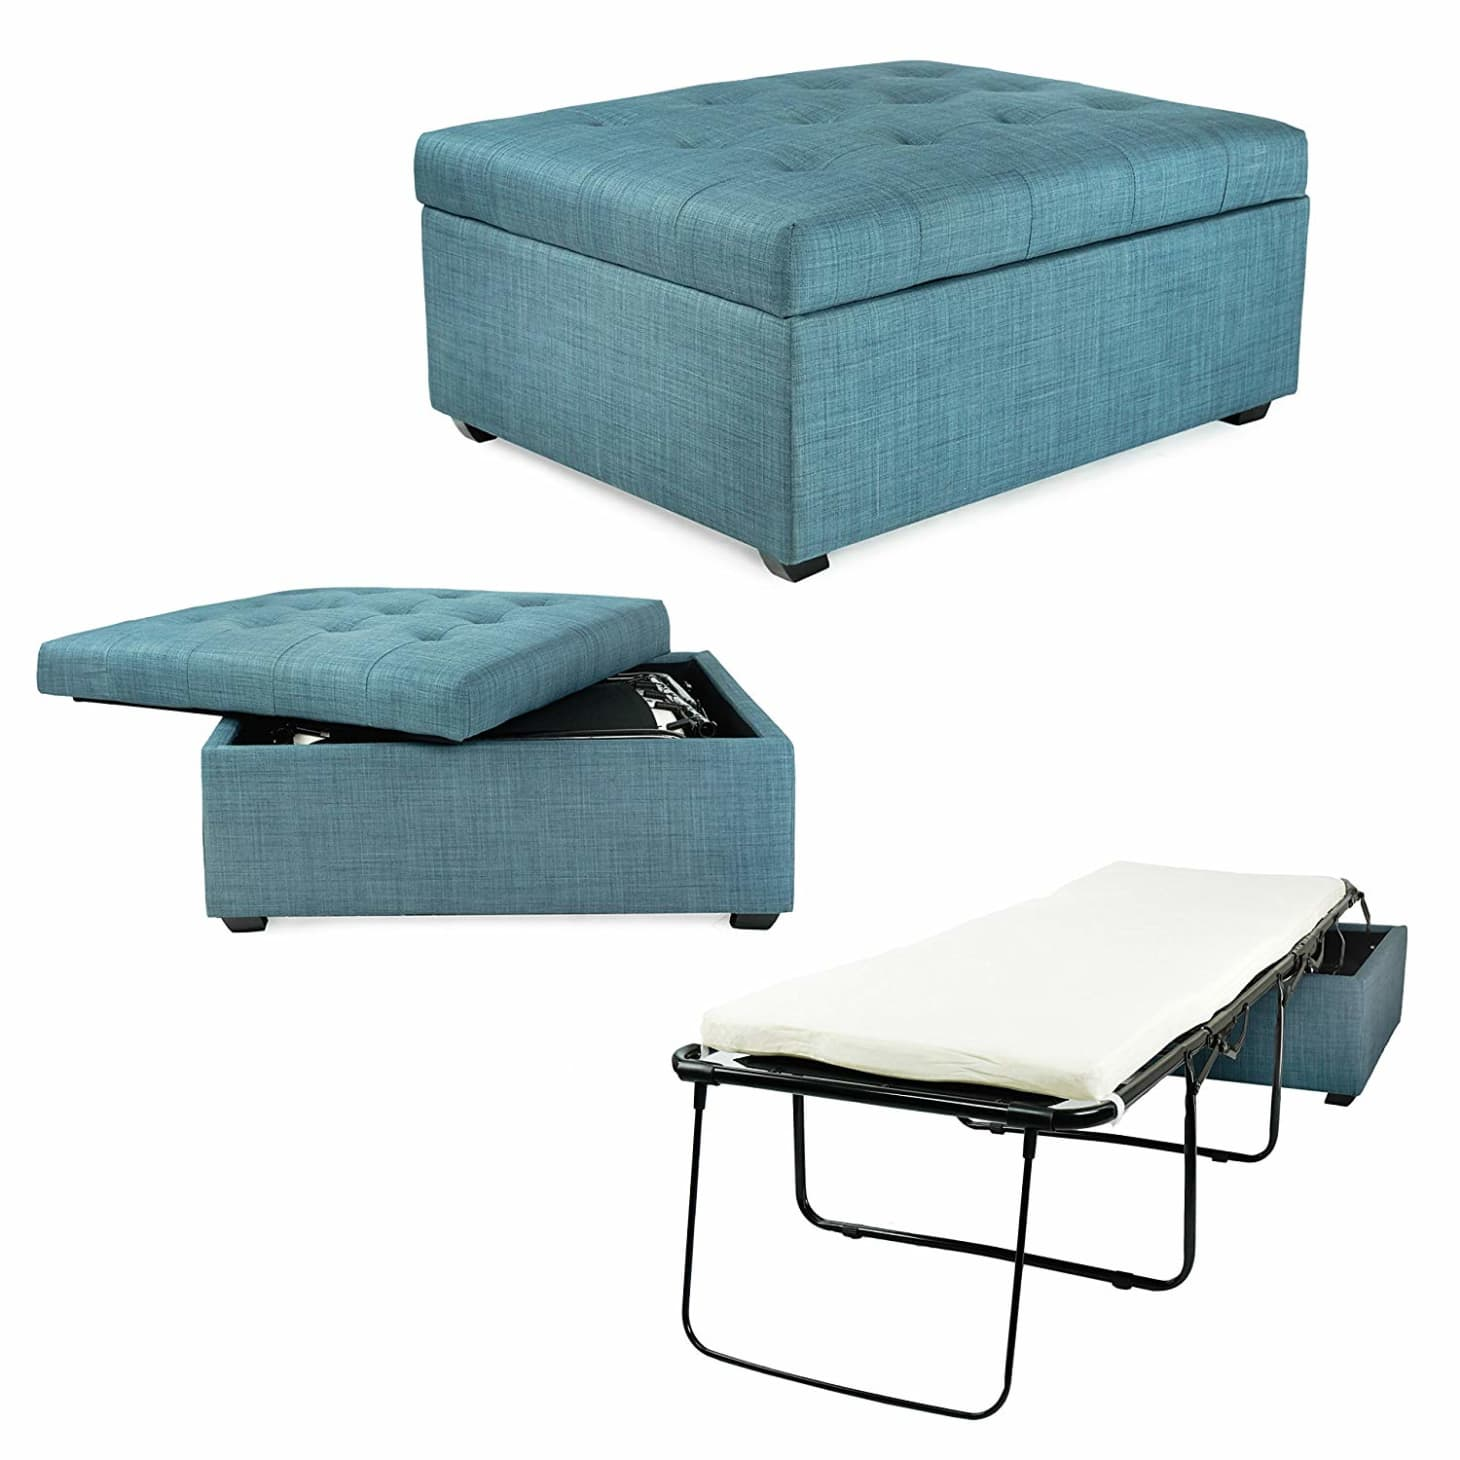 Fantastic Buy An Ottoman Bed For Under 200 Apartment Therapy Beatyapartments Chair Design Images Beatyapartmentscom